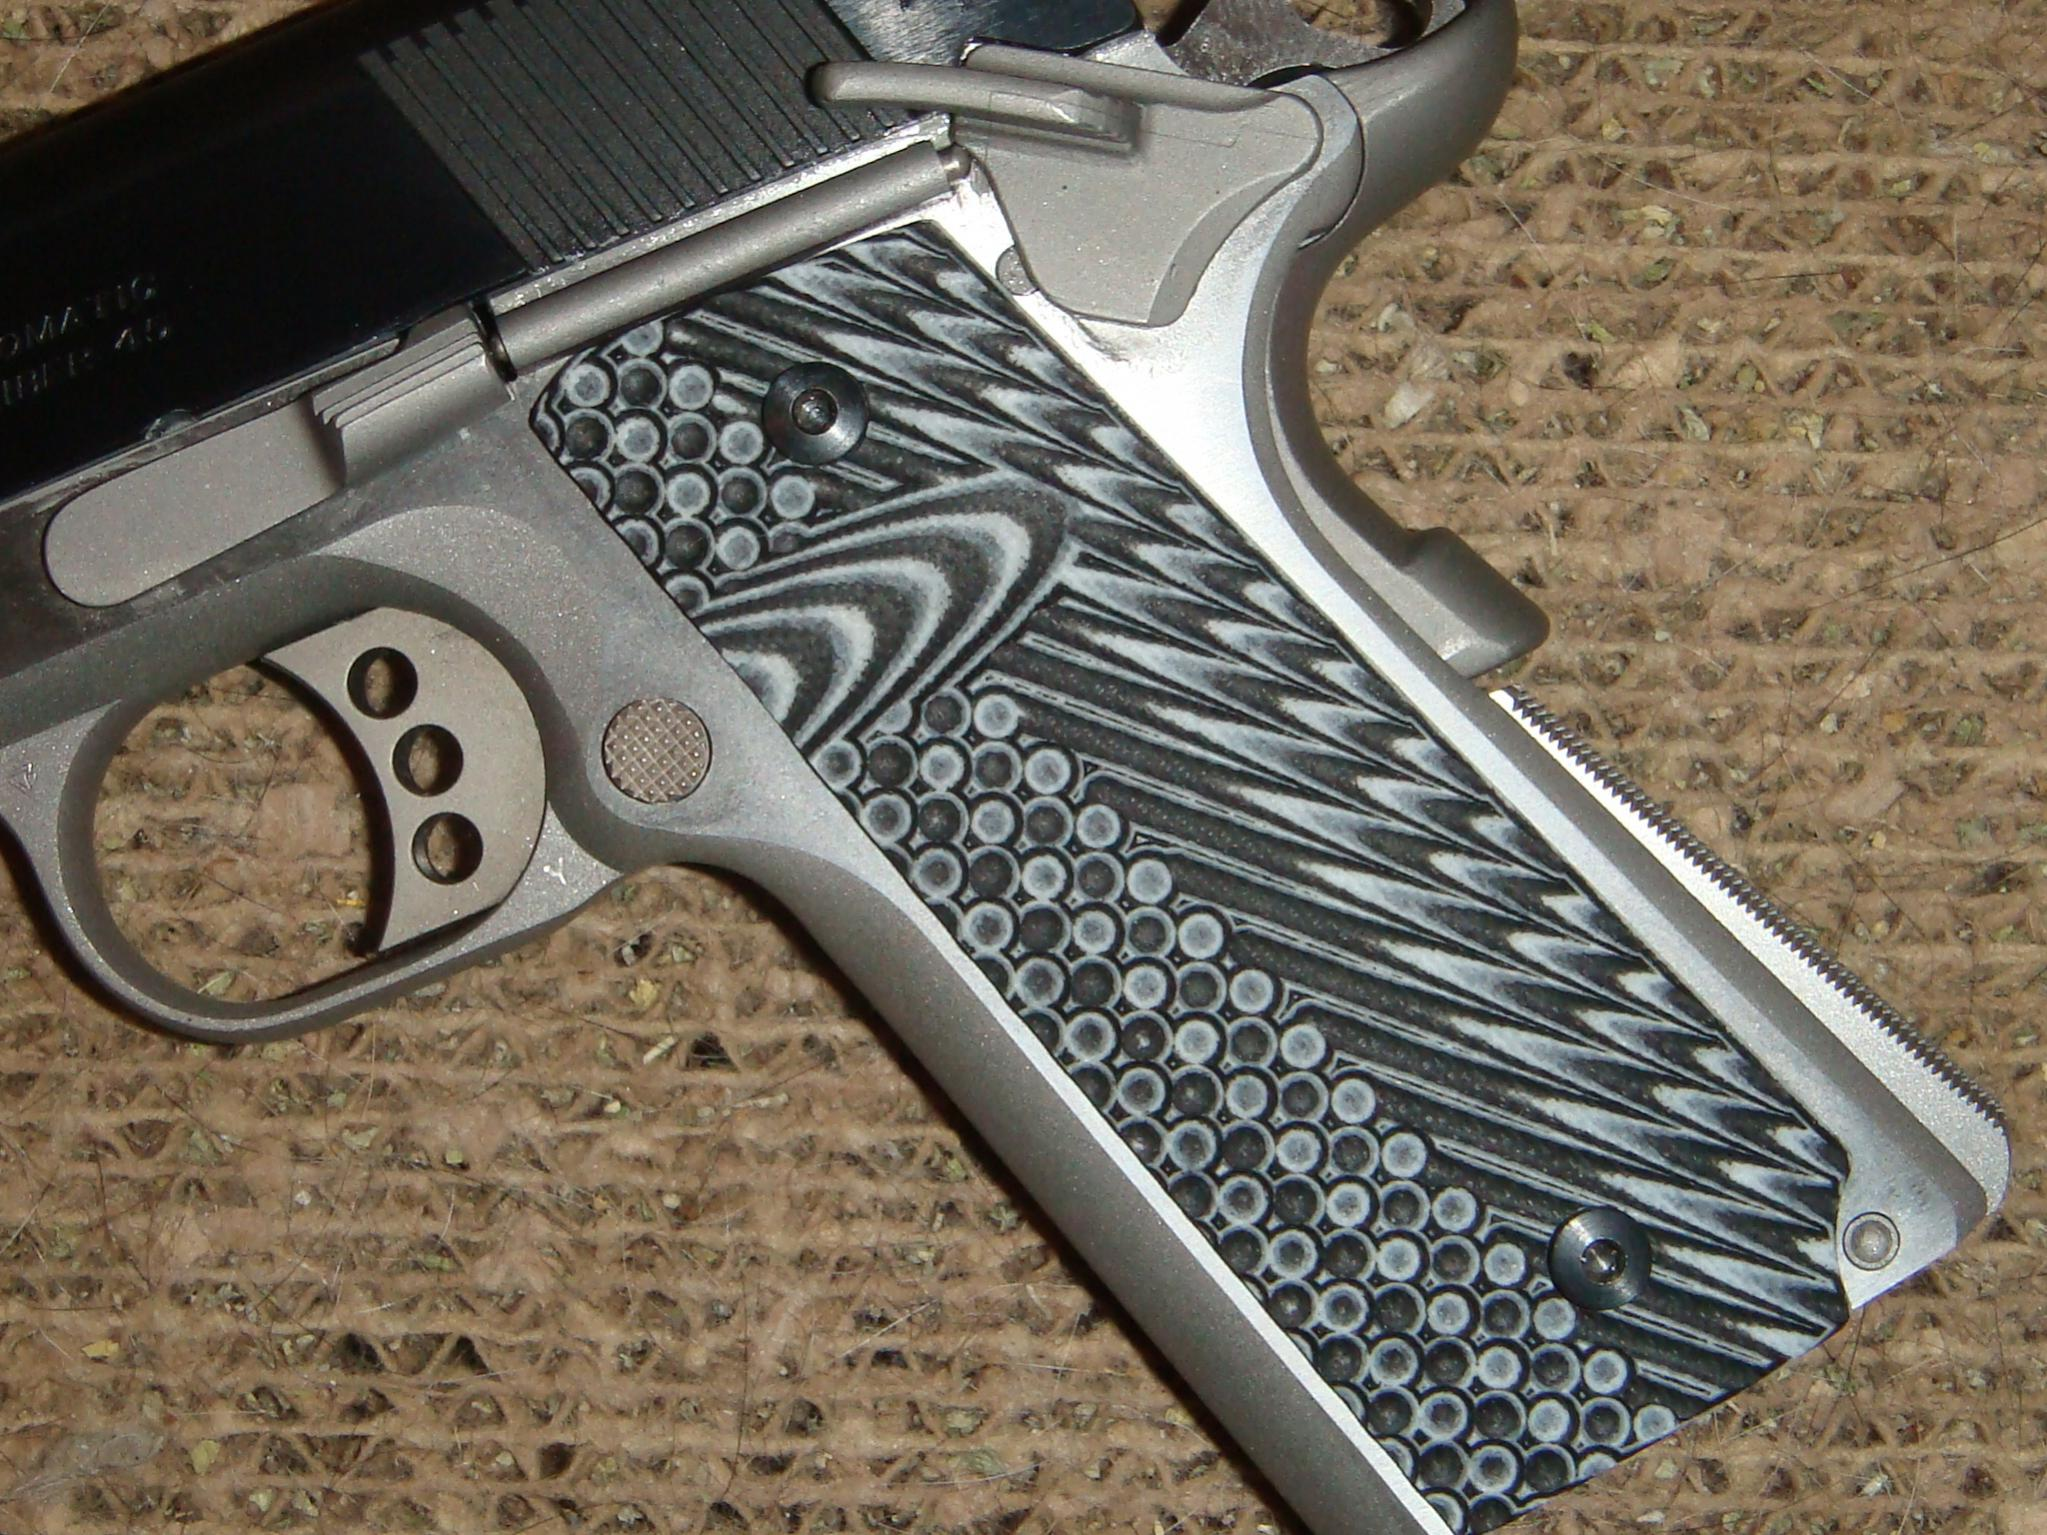 VZ Grips on the Dan Wesson CCO